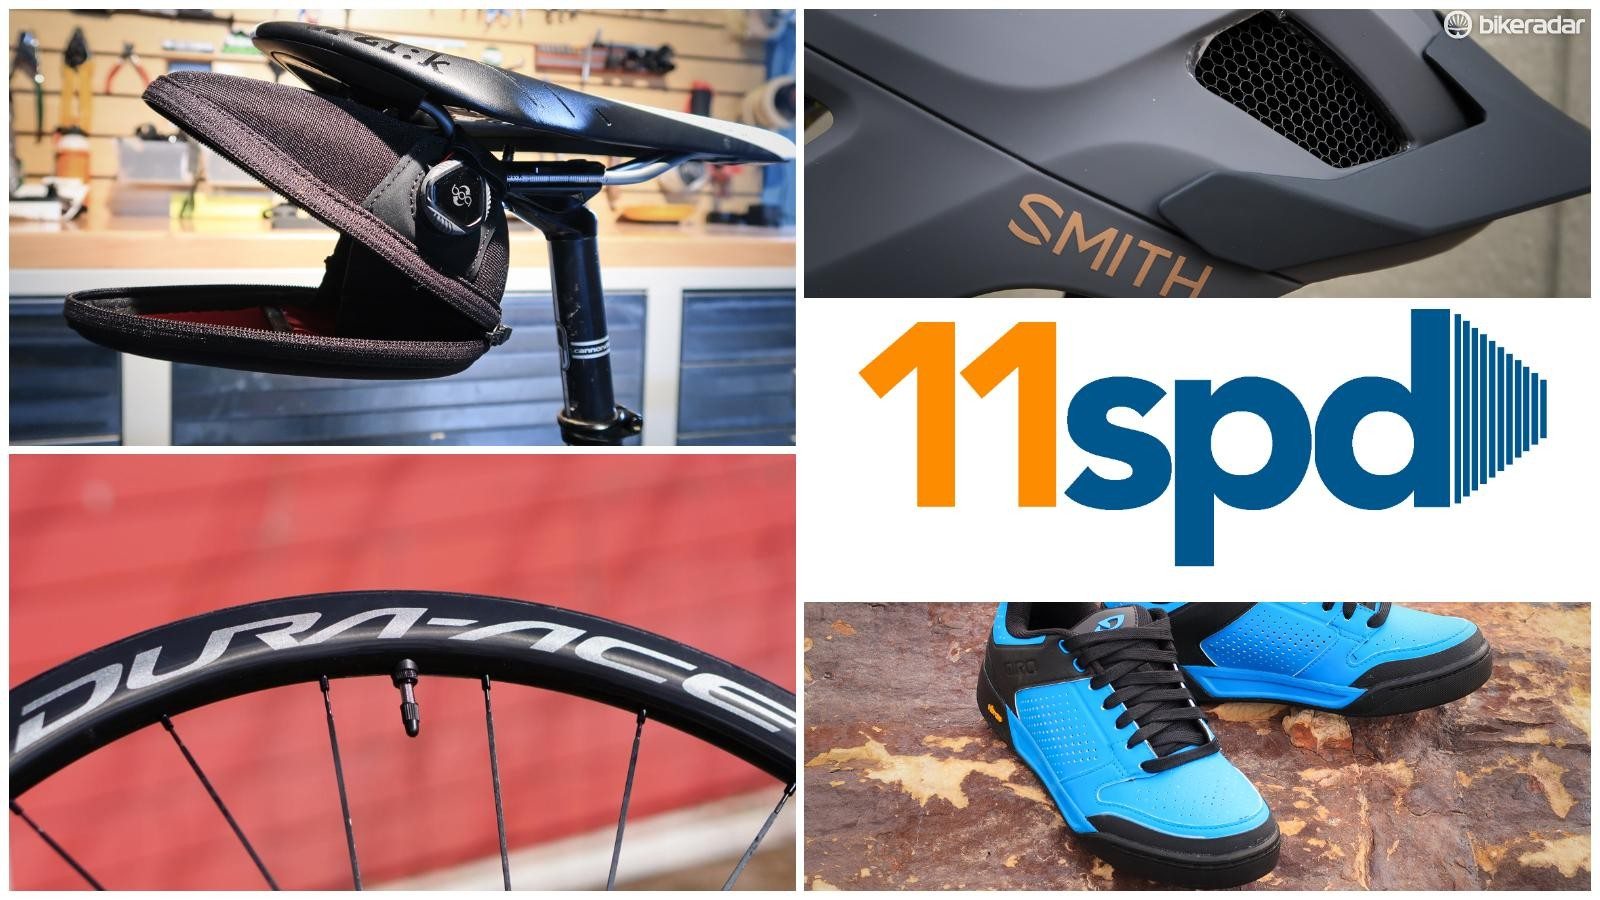 Here's this week's round-up of new gear